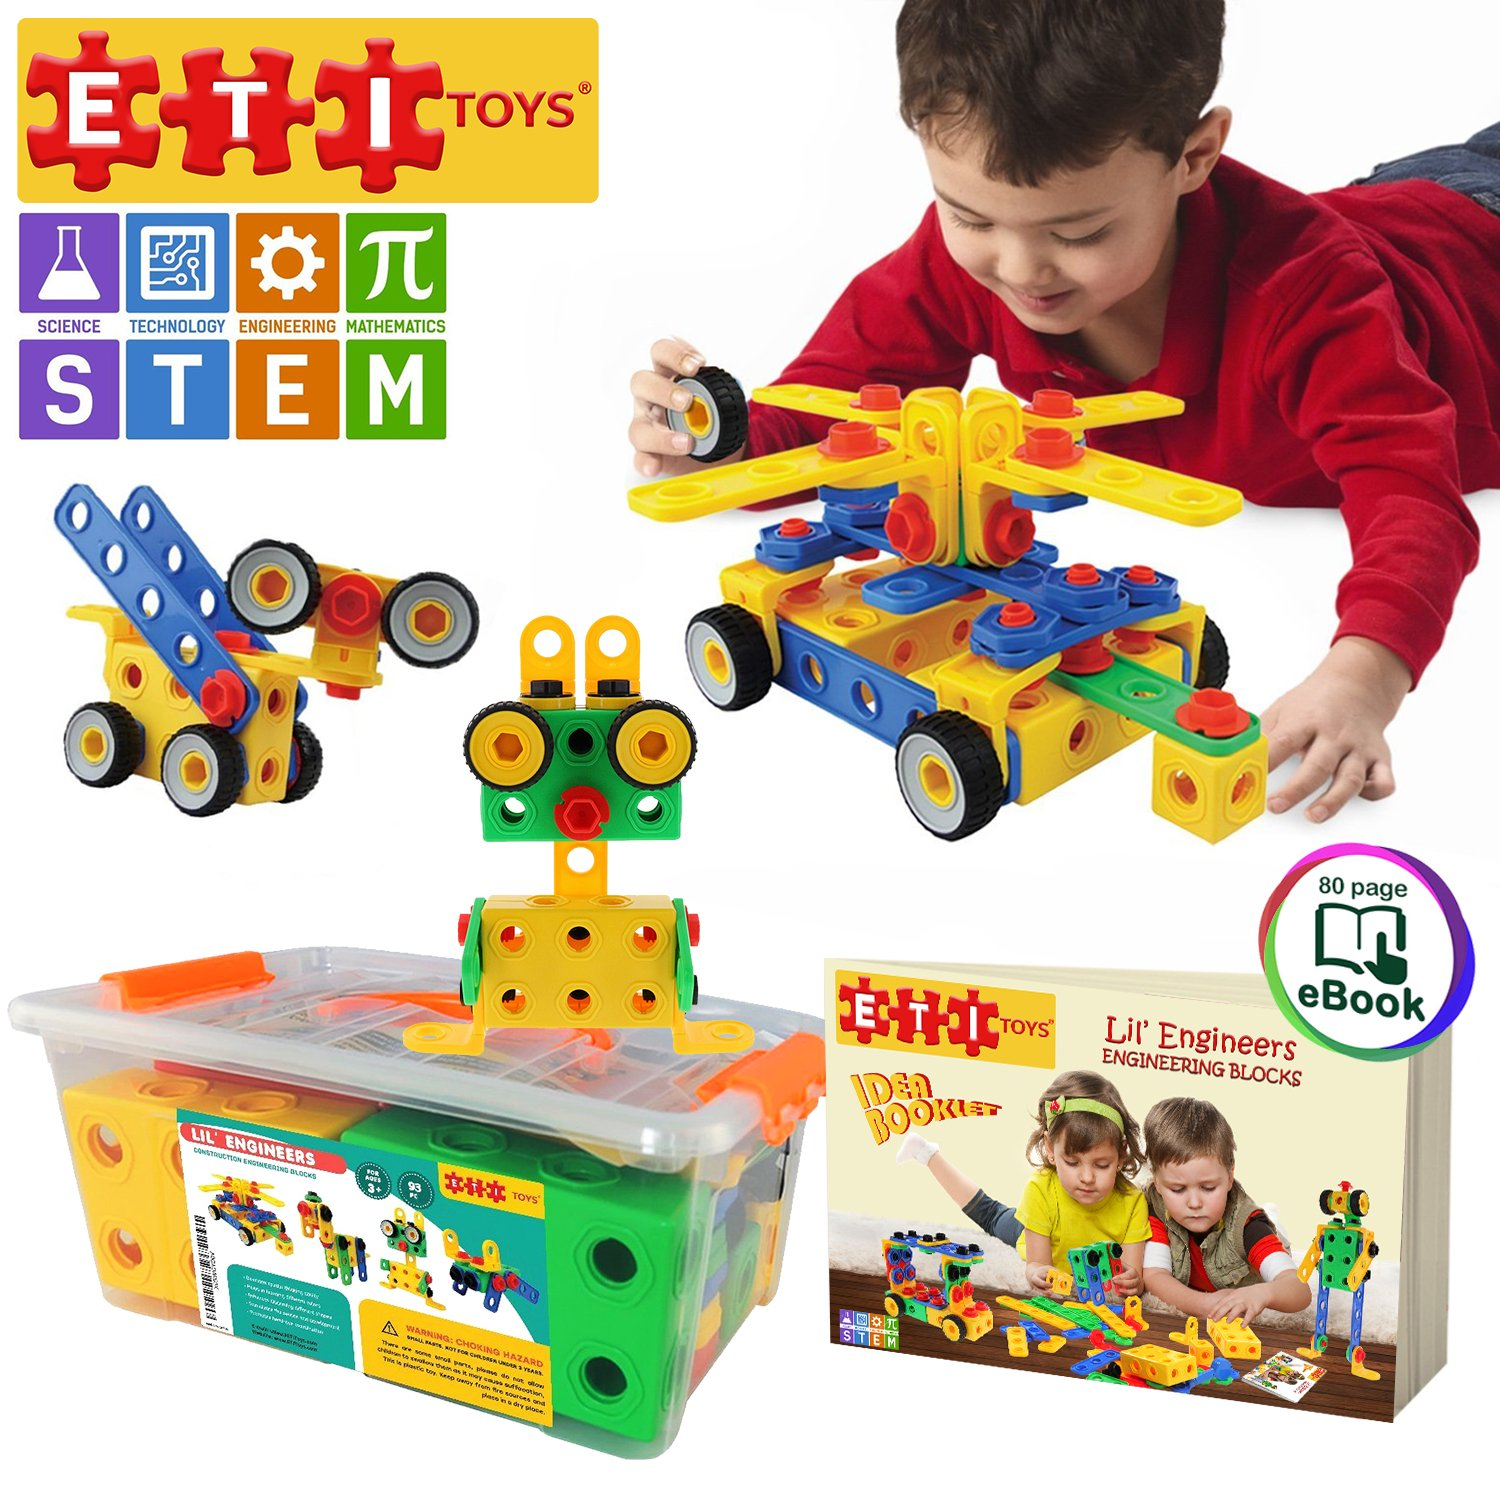 Amazon ETI Toys STEM Learning